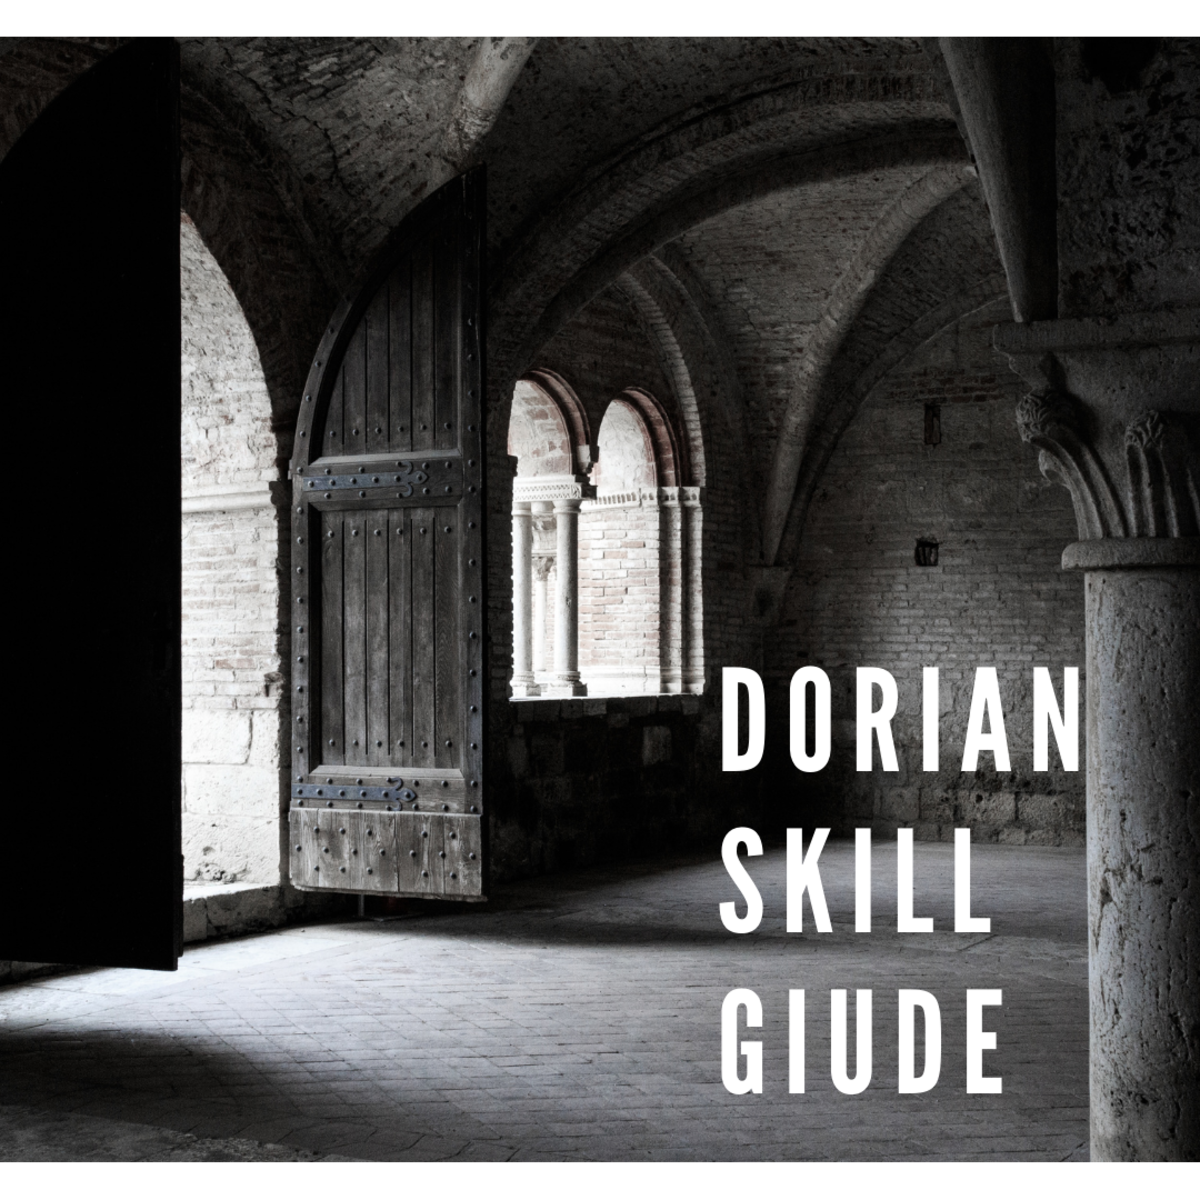 Struggling with how to build your characters? Here's a skill guide for Dorian.